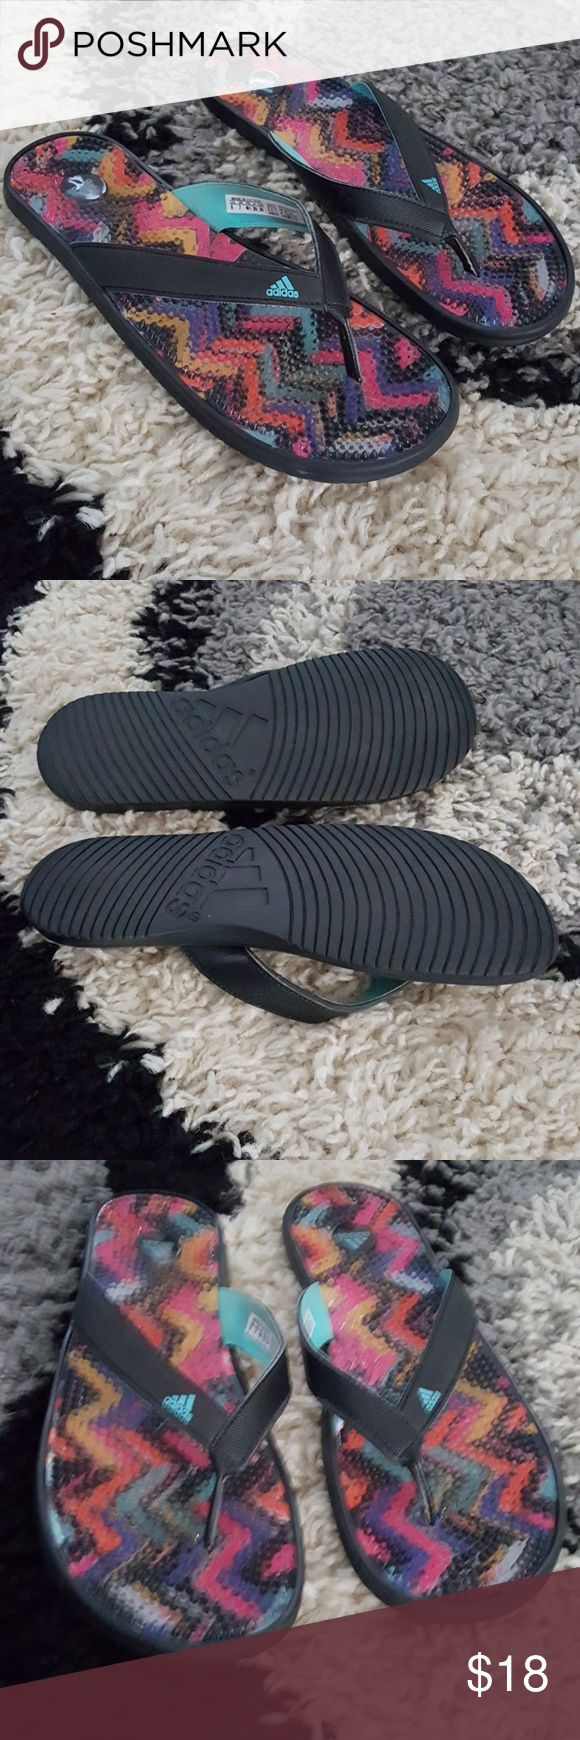 Bogo New Adidas Flip flops cute flops new and never worn, veey comfortable with the soft gel massagers inside will fit size 9 through 10 but marked as a mens 8 good to wear around the pool or with shorts adidas Shoes